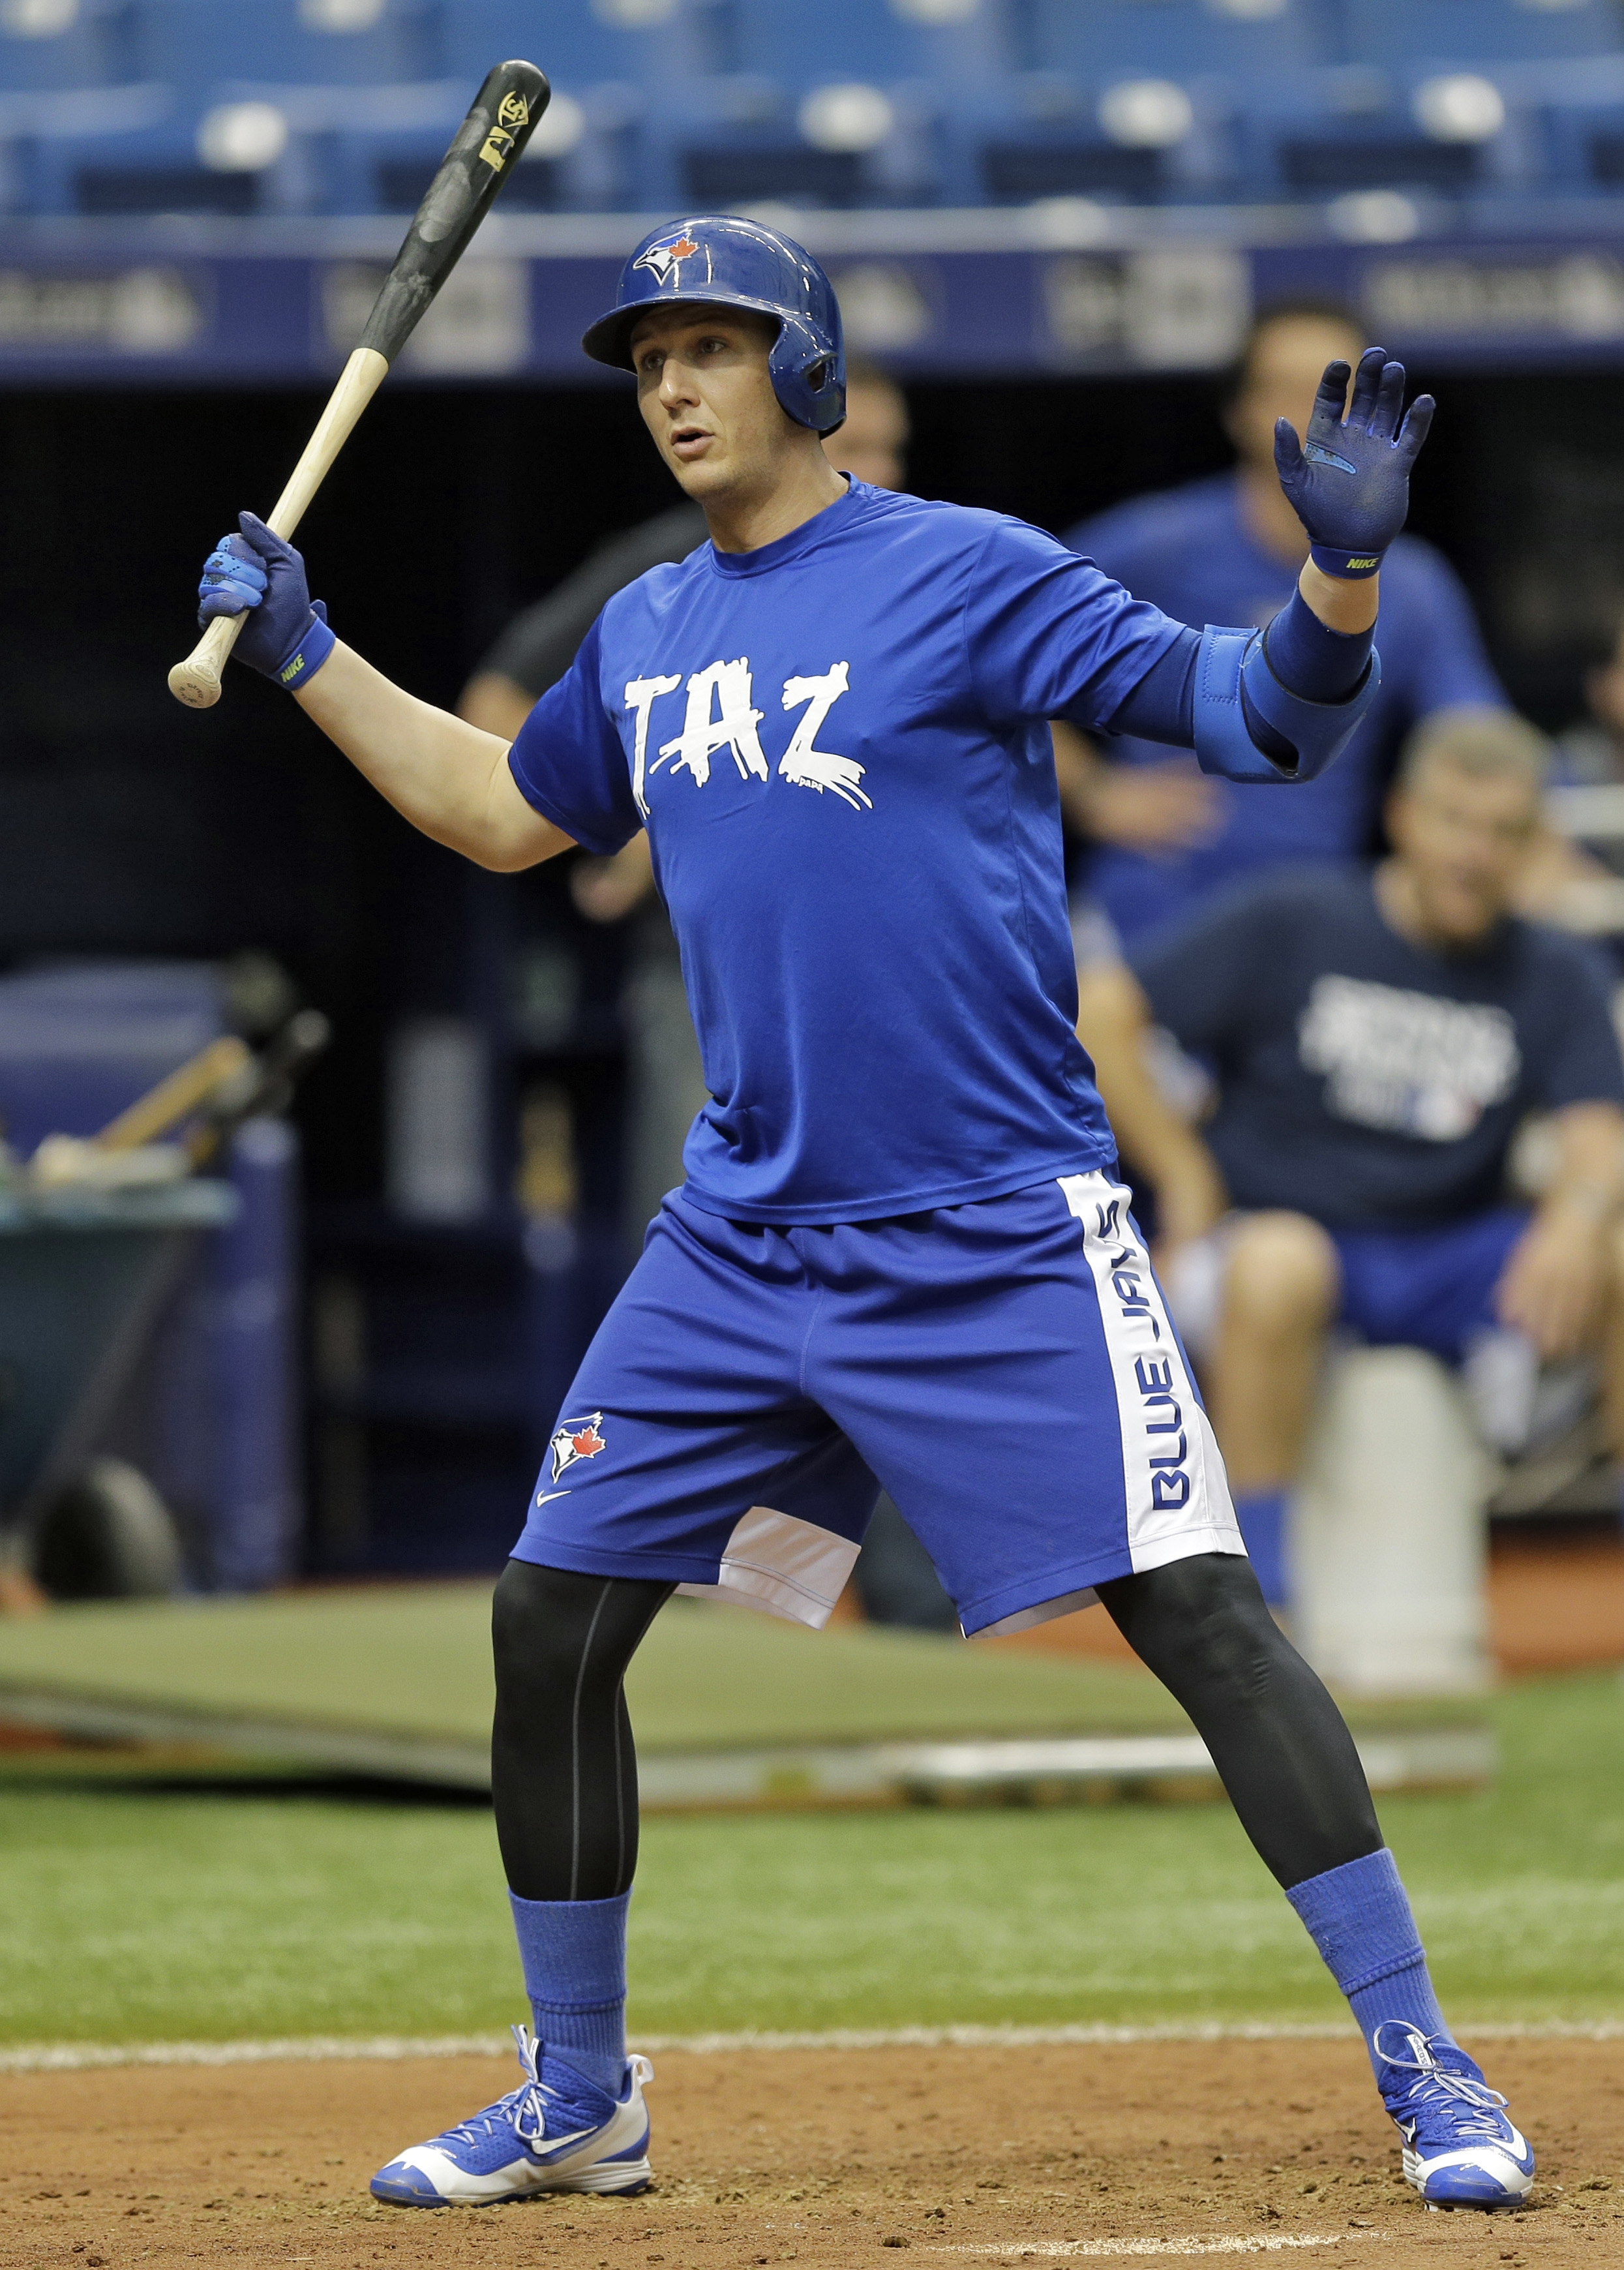 Toronto Blue Jays' Troy Tulowitzki backs away from an inside pitch from David Price during a simulated game before a baseball game between the Tampa Bay Rays and the Blue Jays Friday, Oct. 2, 2015, in St. Petersburg, Fla.  Tulowitzki, who hasn't played si